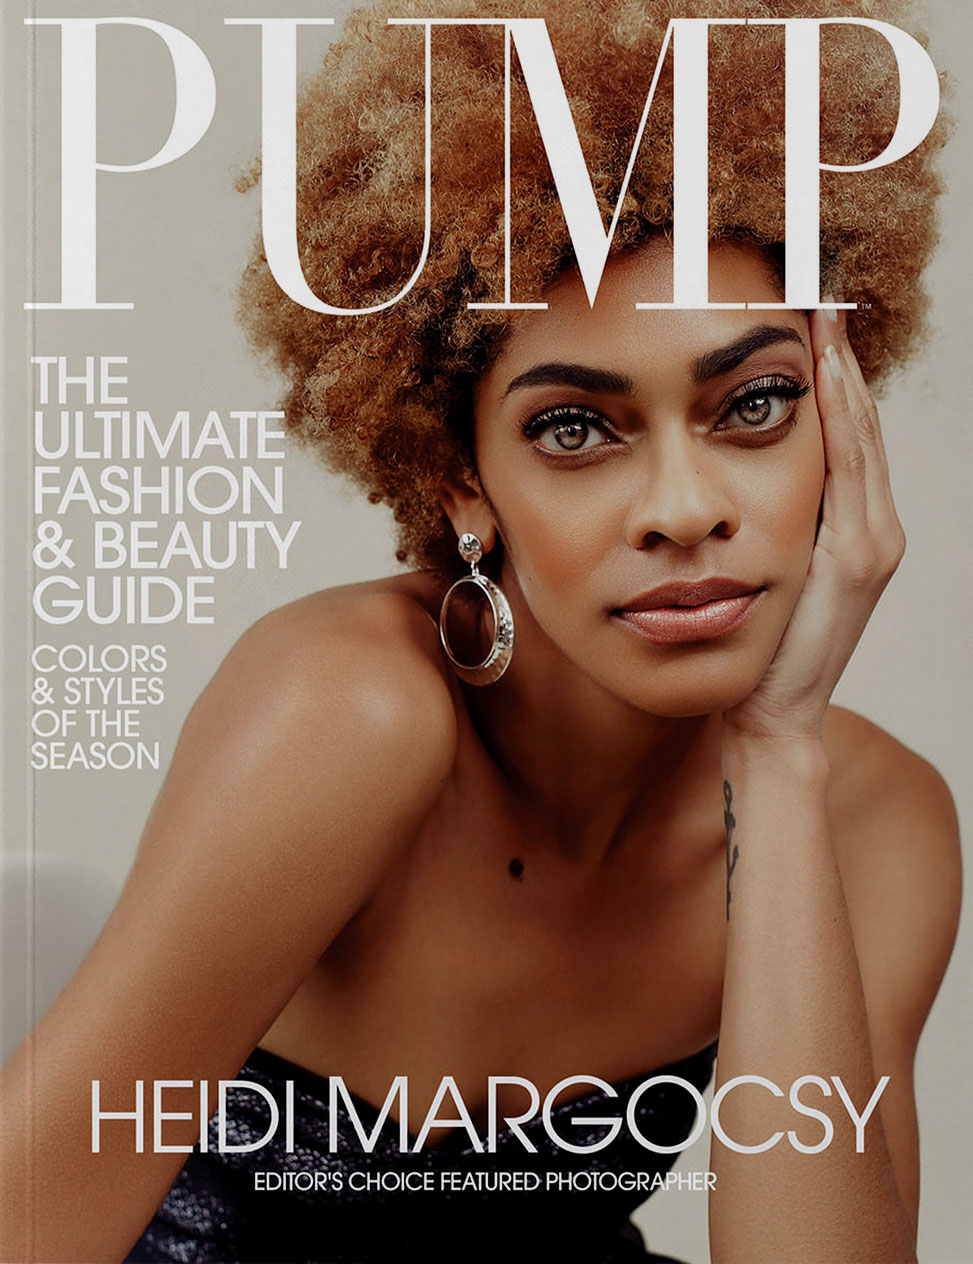 Magazine cover for PUMP magazine depicting a woman of color.